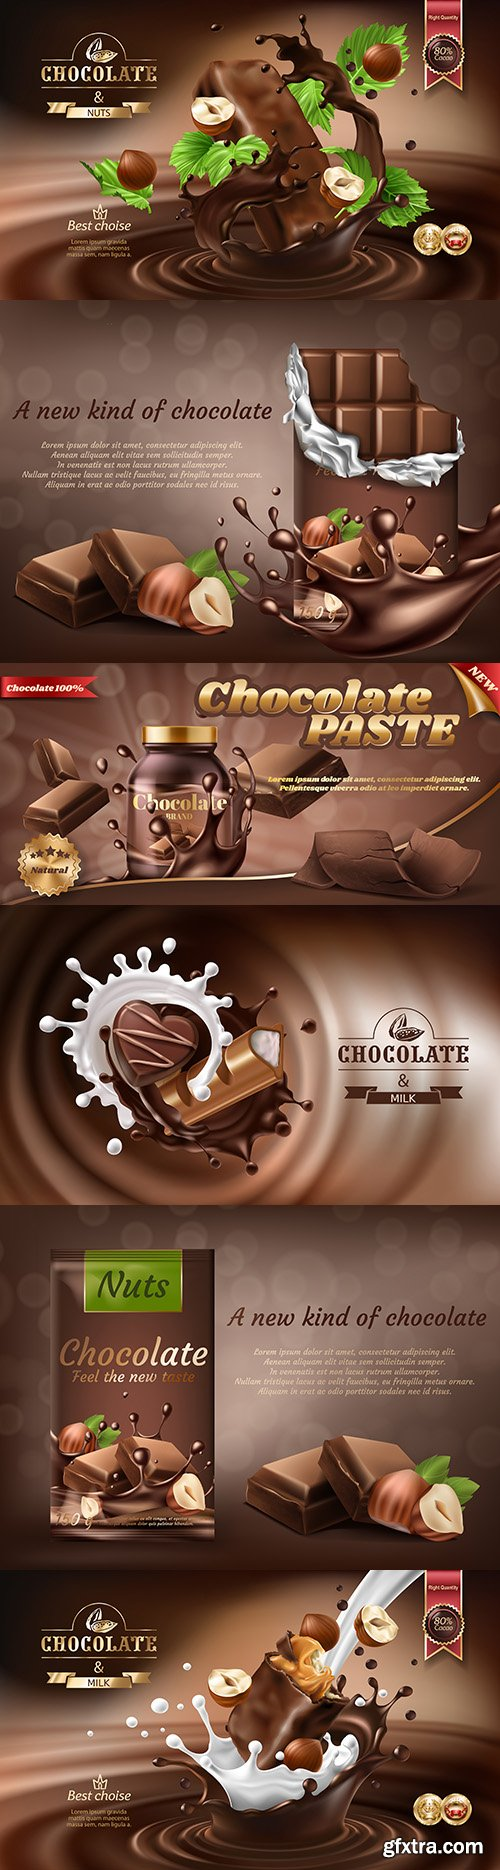 Chocolate and nuts 3d-spray melted chocolate advertising banter